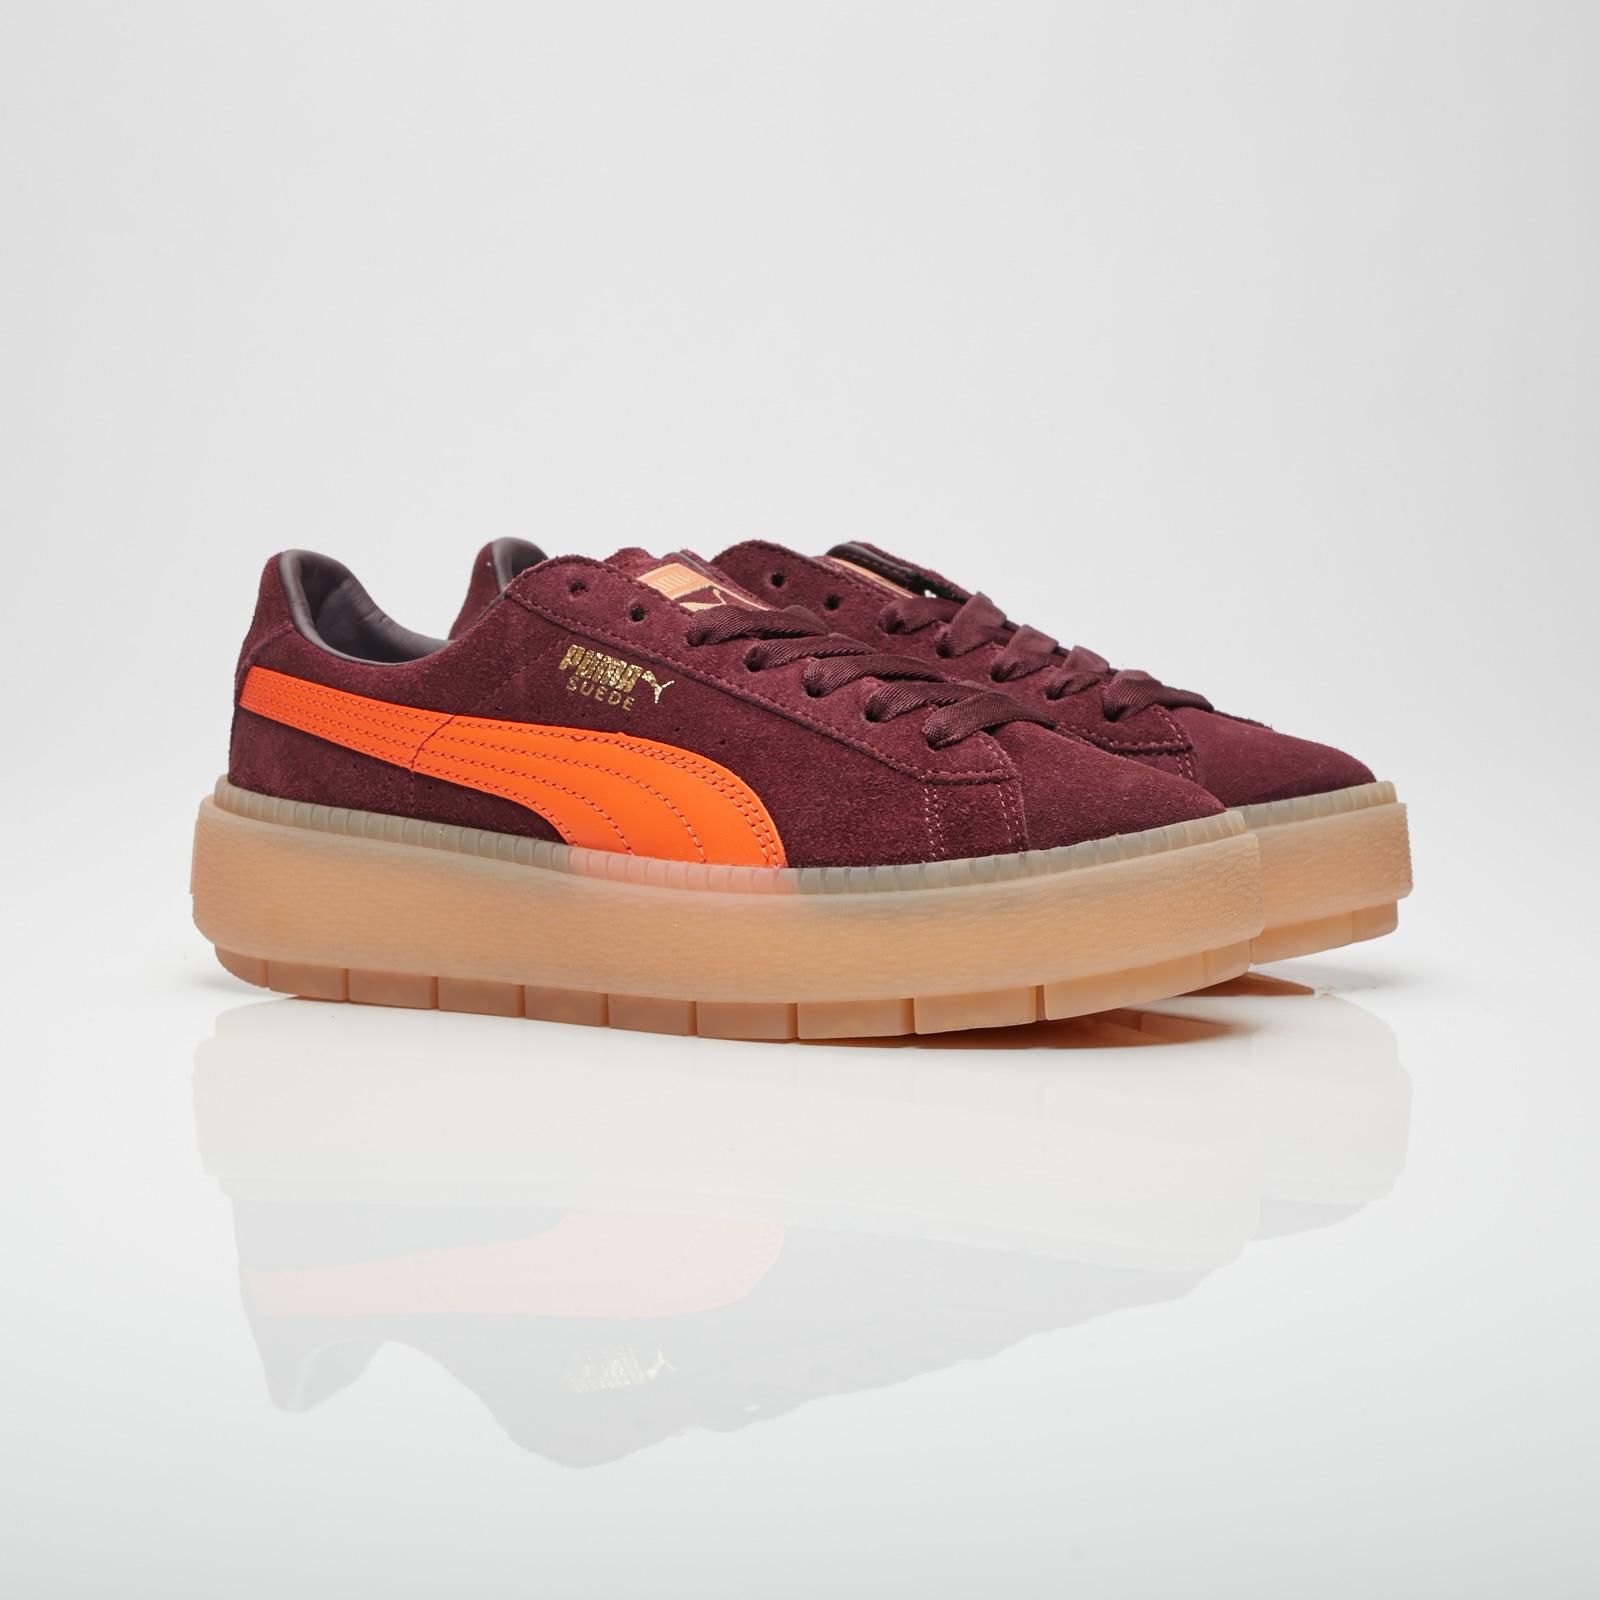 official photos 752d7 2096e Puma Suede Platform Trace Block - 367057-01 - Sneakersnstuff ...